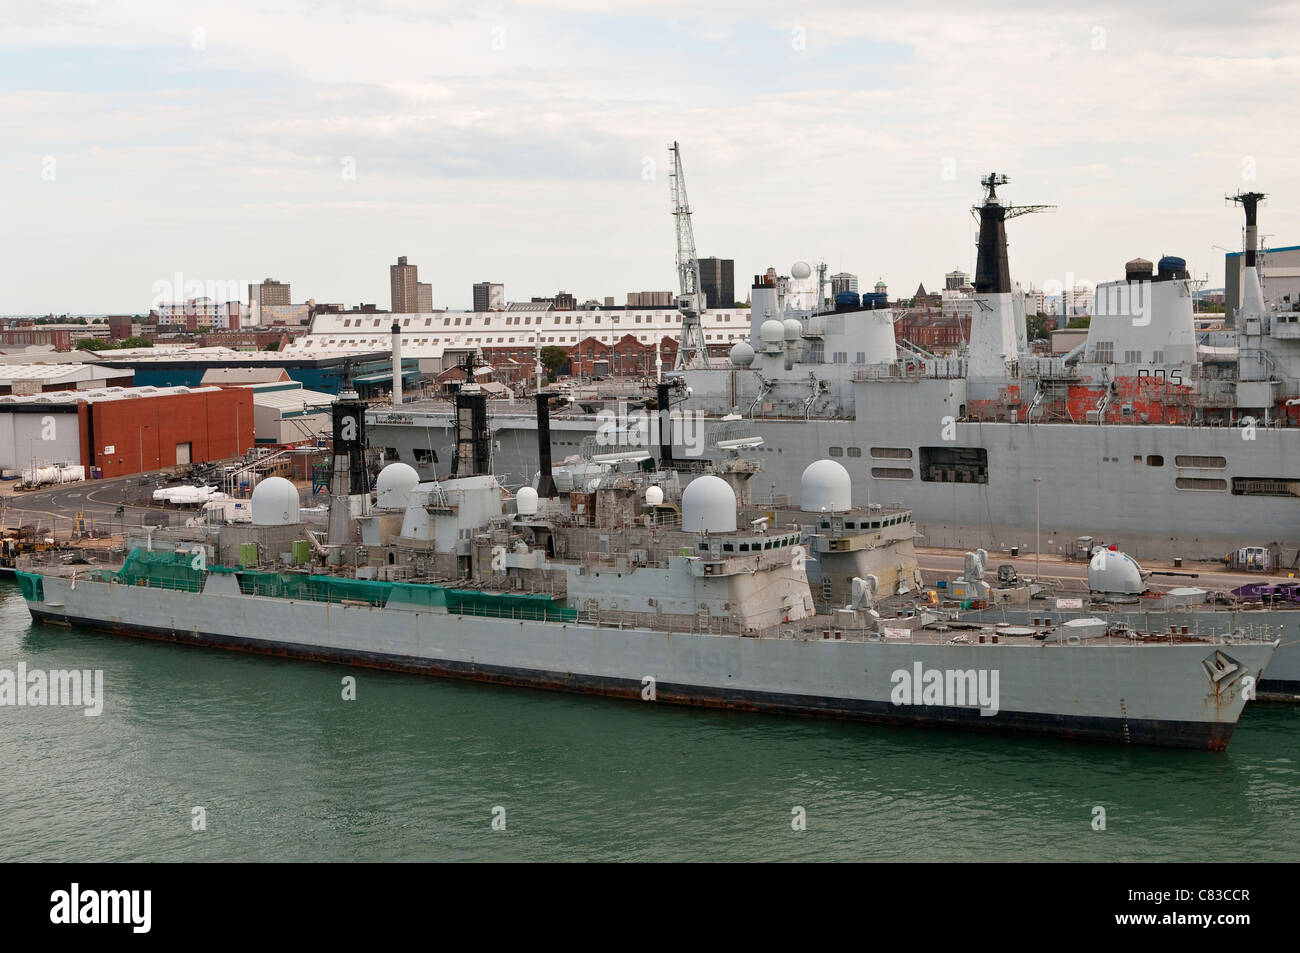 Navy Ships Waiting To Be Scrapped in Portsmouth Dockyard - Stock Image